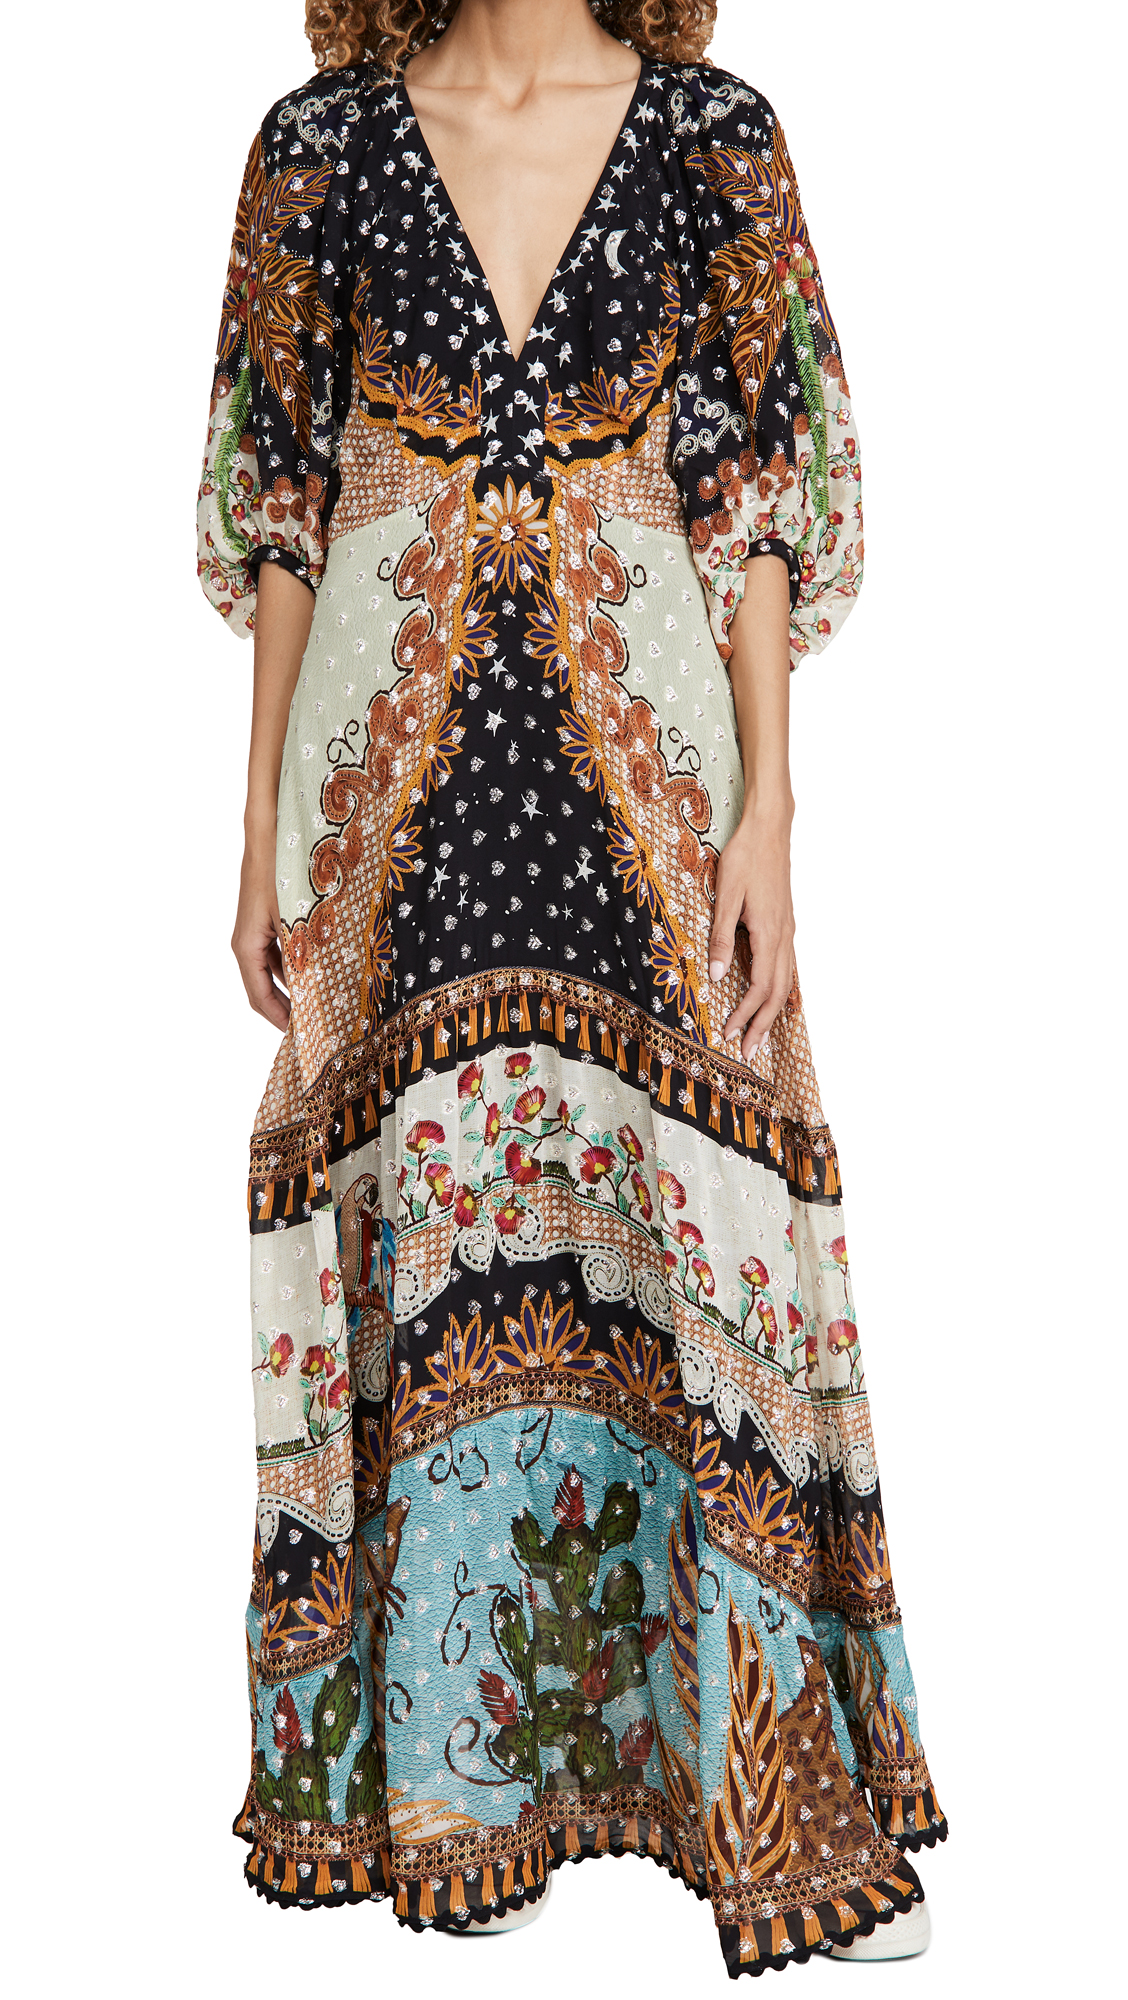 FARM Rio Embroidered Forest Maxi Dress